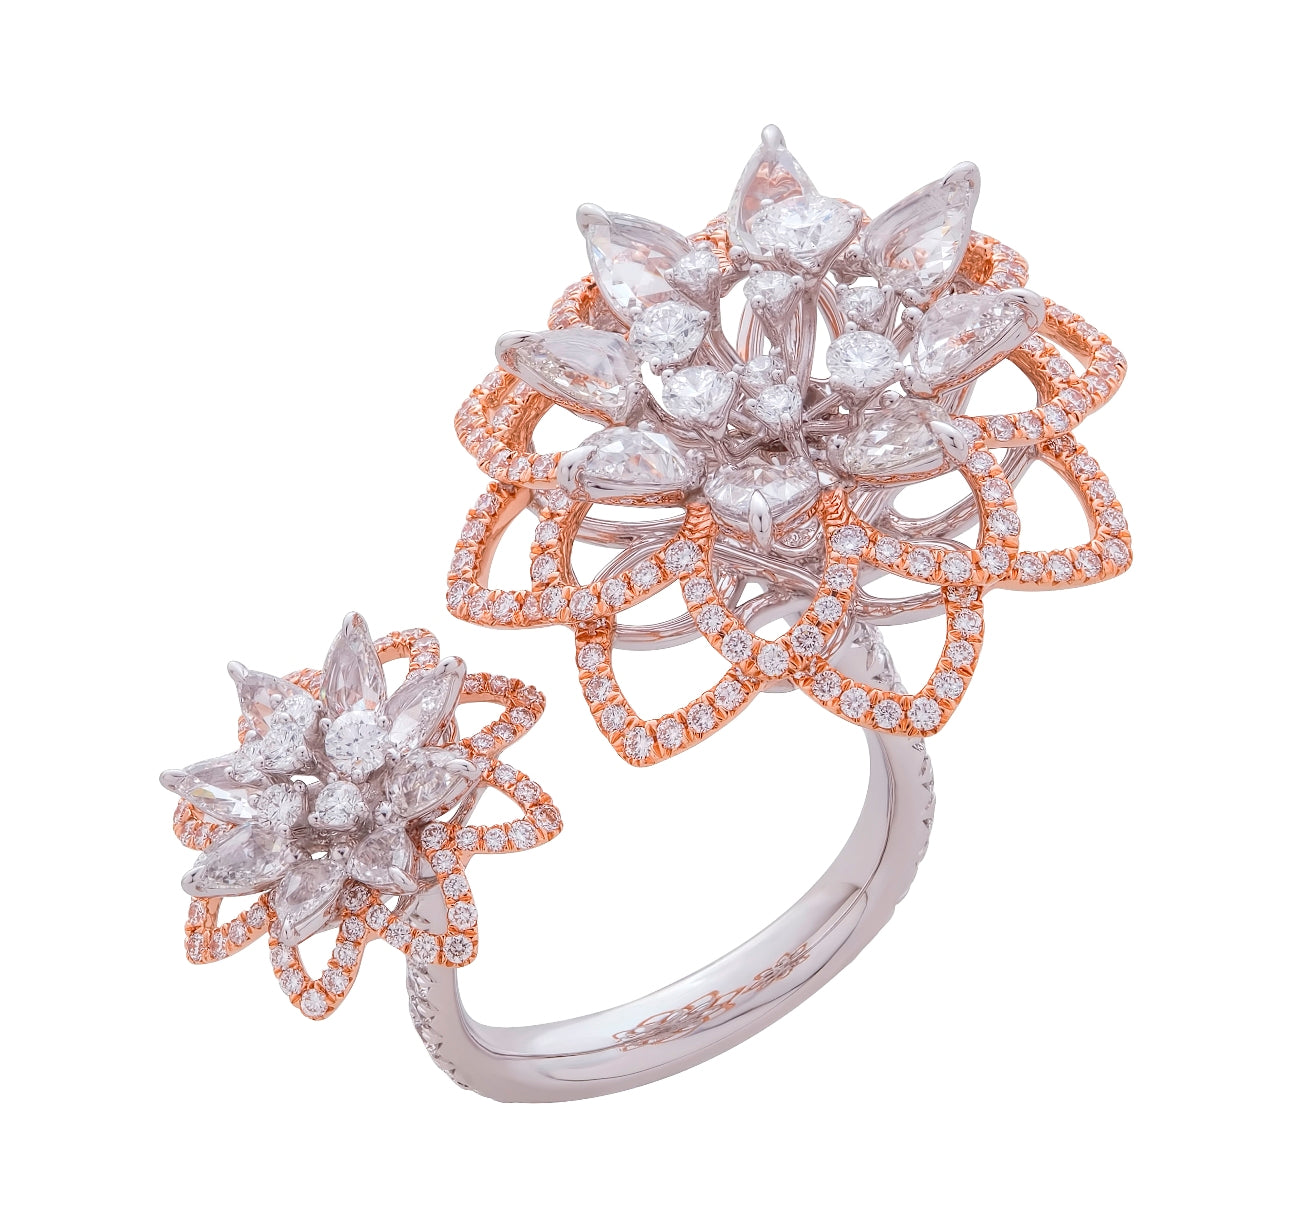 Simulated diamond statement cocktail ring, Rings - Ratnali Jewels